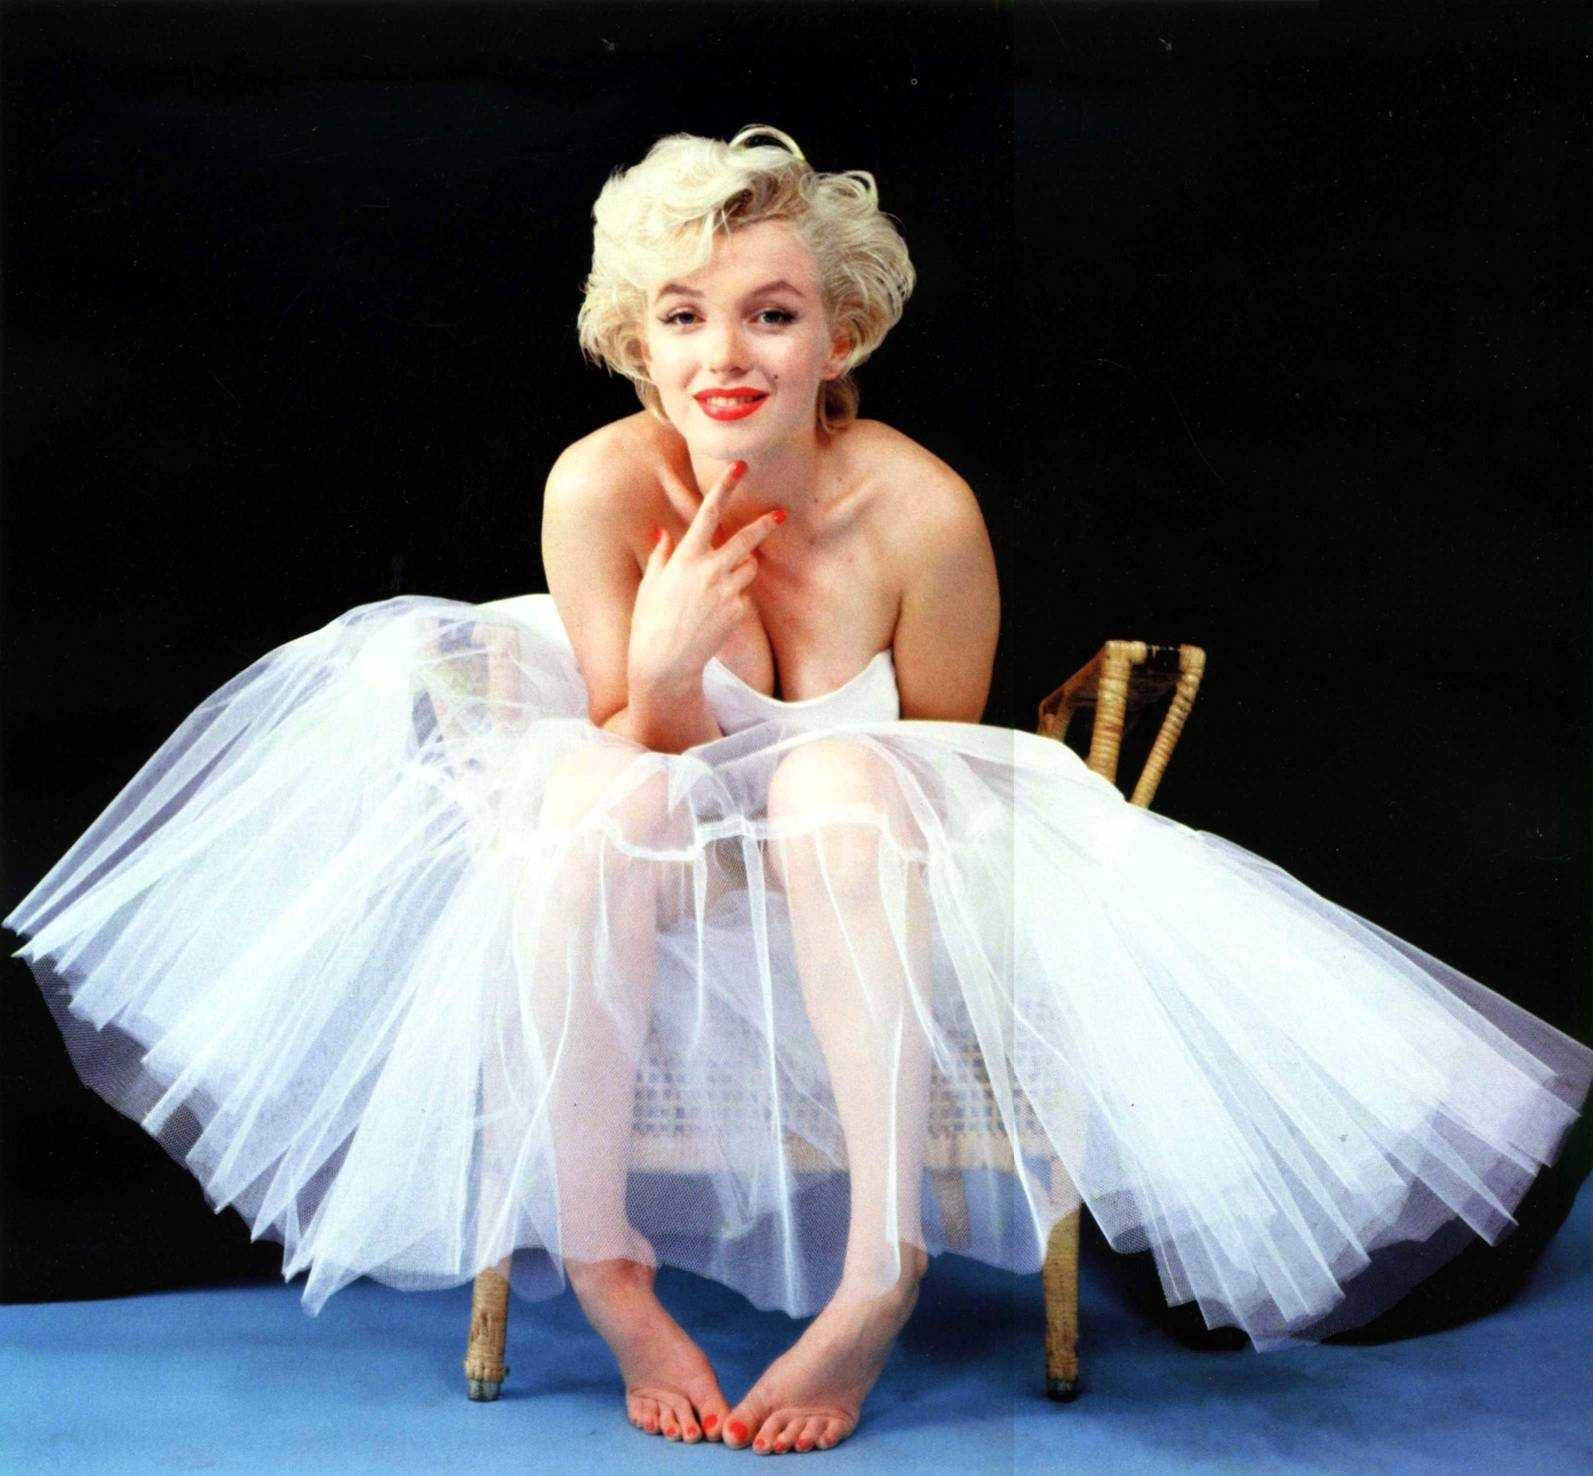 ... costume for kids · marilyn monroe s beauty acting and modeling were not the only things that made her stand ...  sc 1 st  Best Kids Costumes & Marilyn Monroe Costume For Kids - Best Kids Costumes